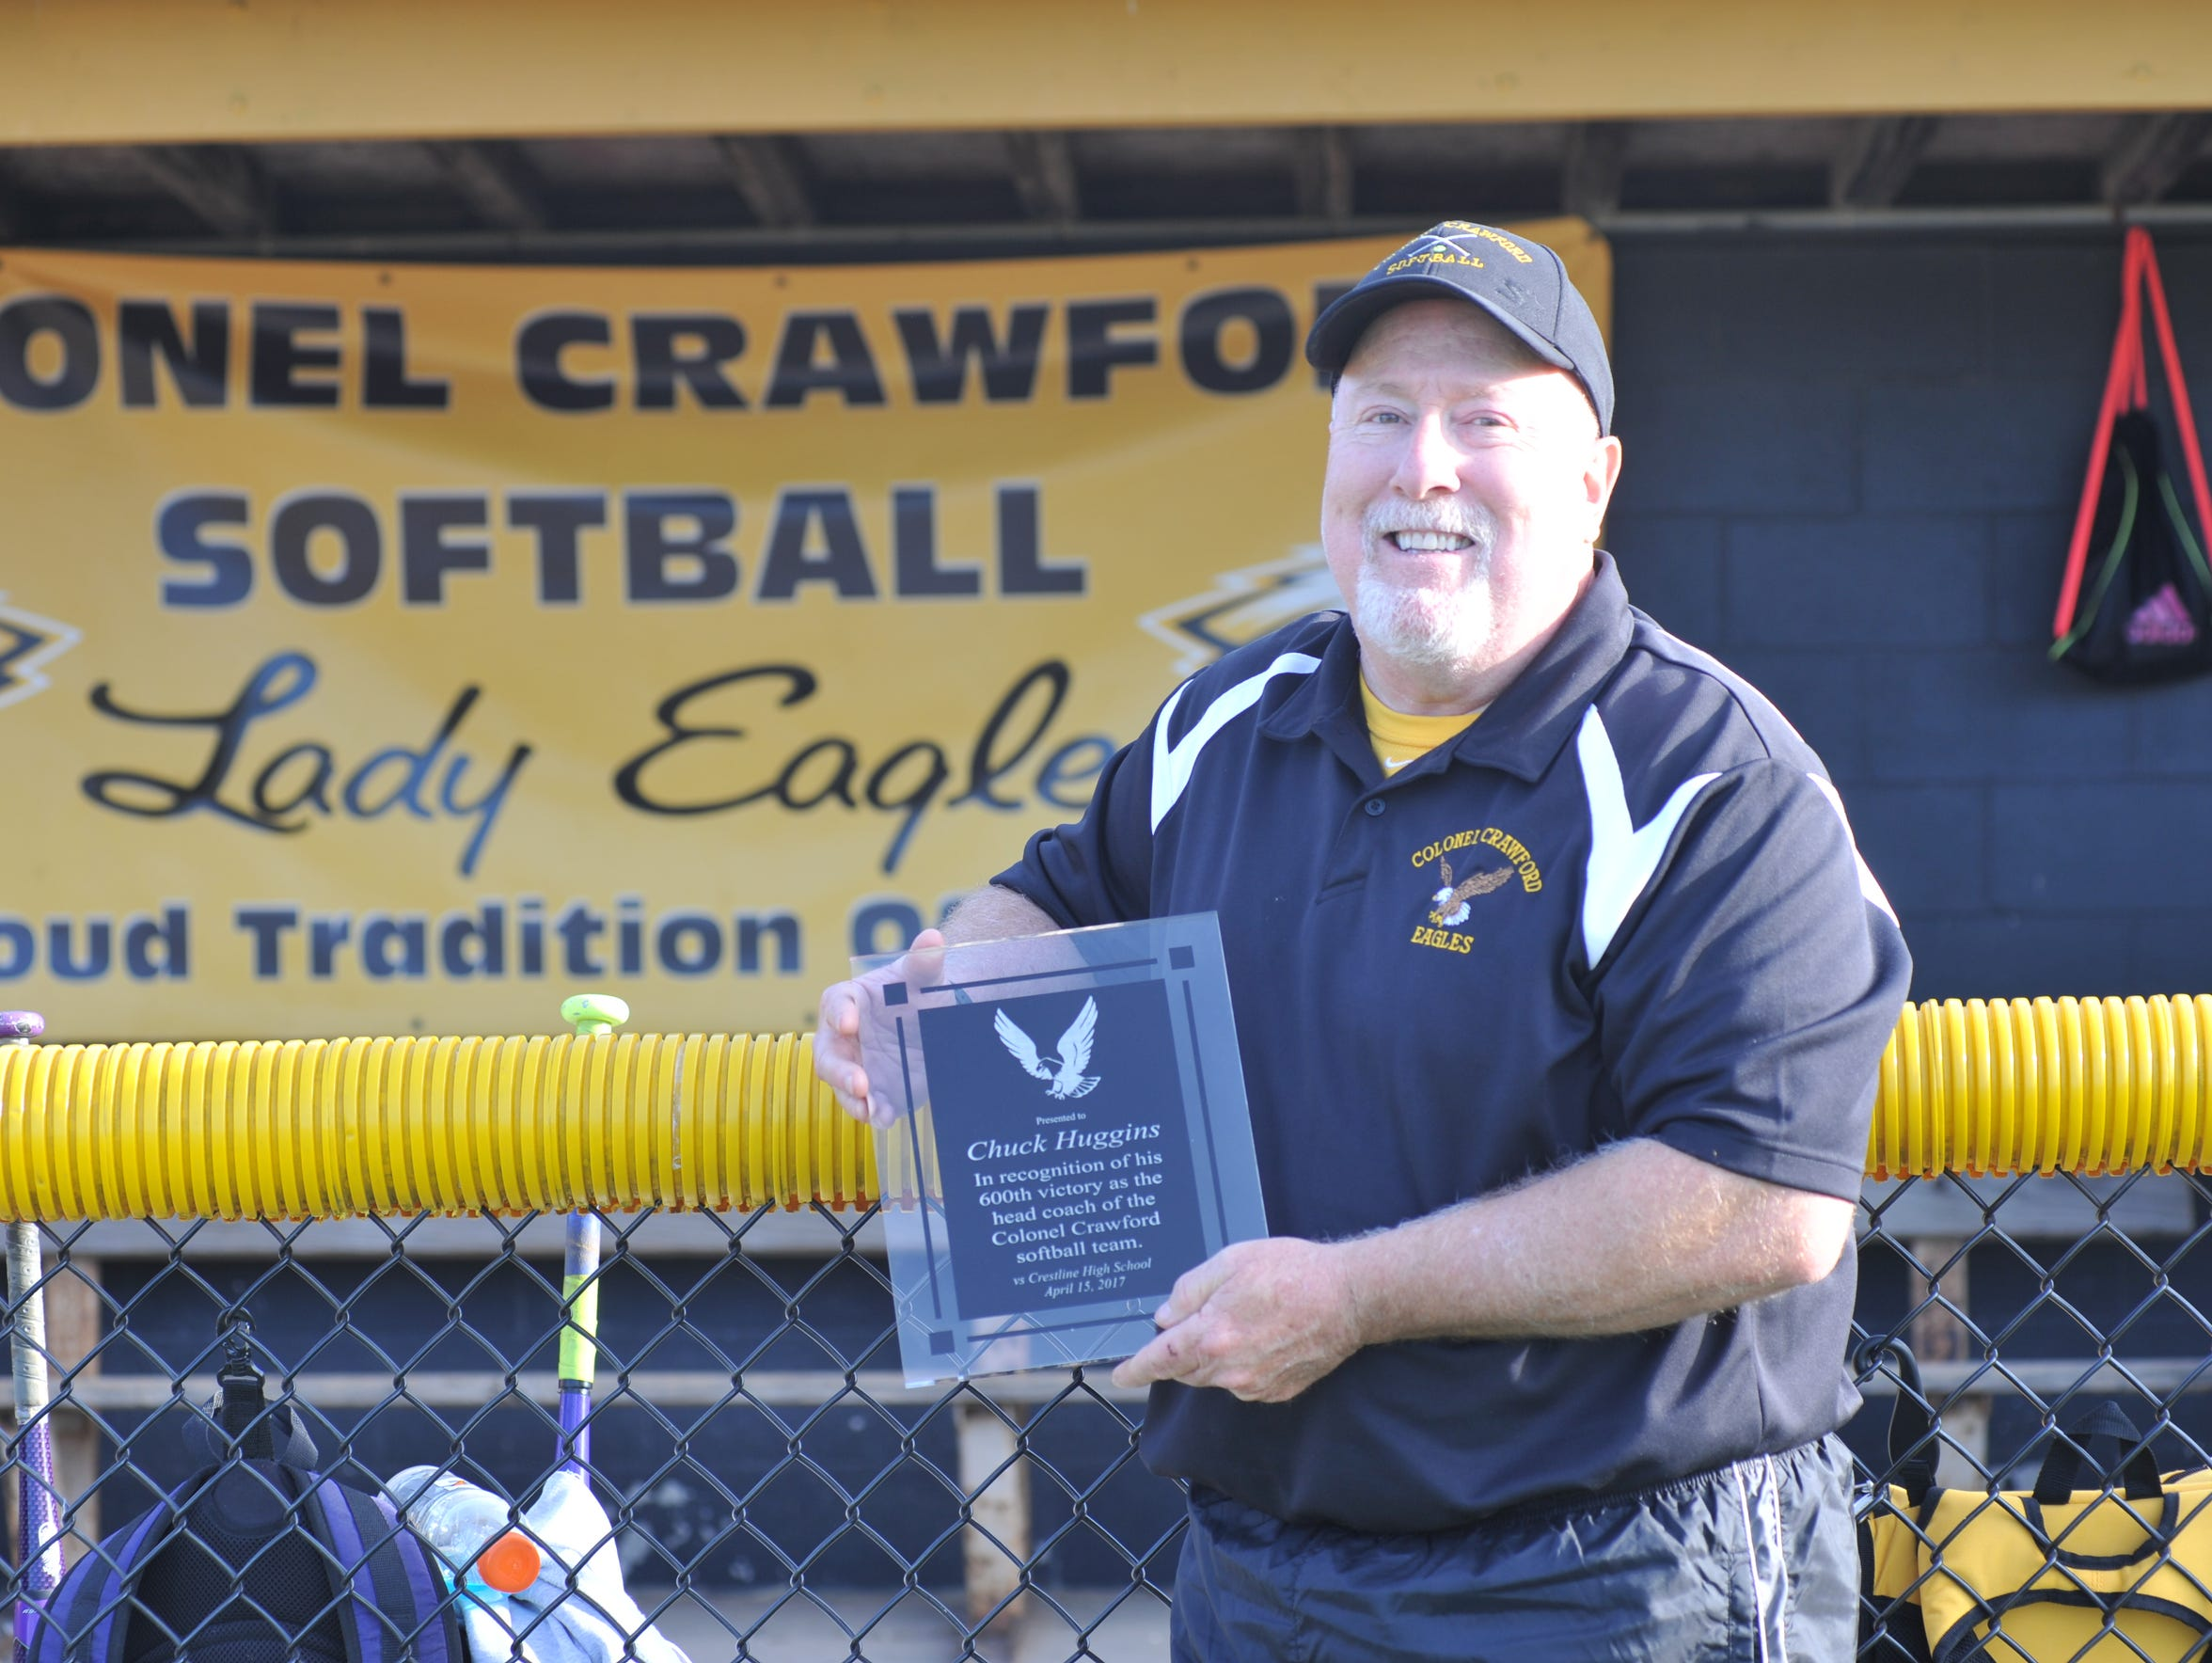 Chuck Huggins holds his 600th win plaque athletic director